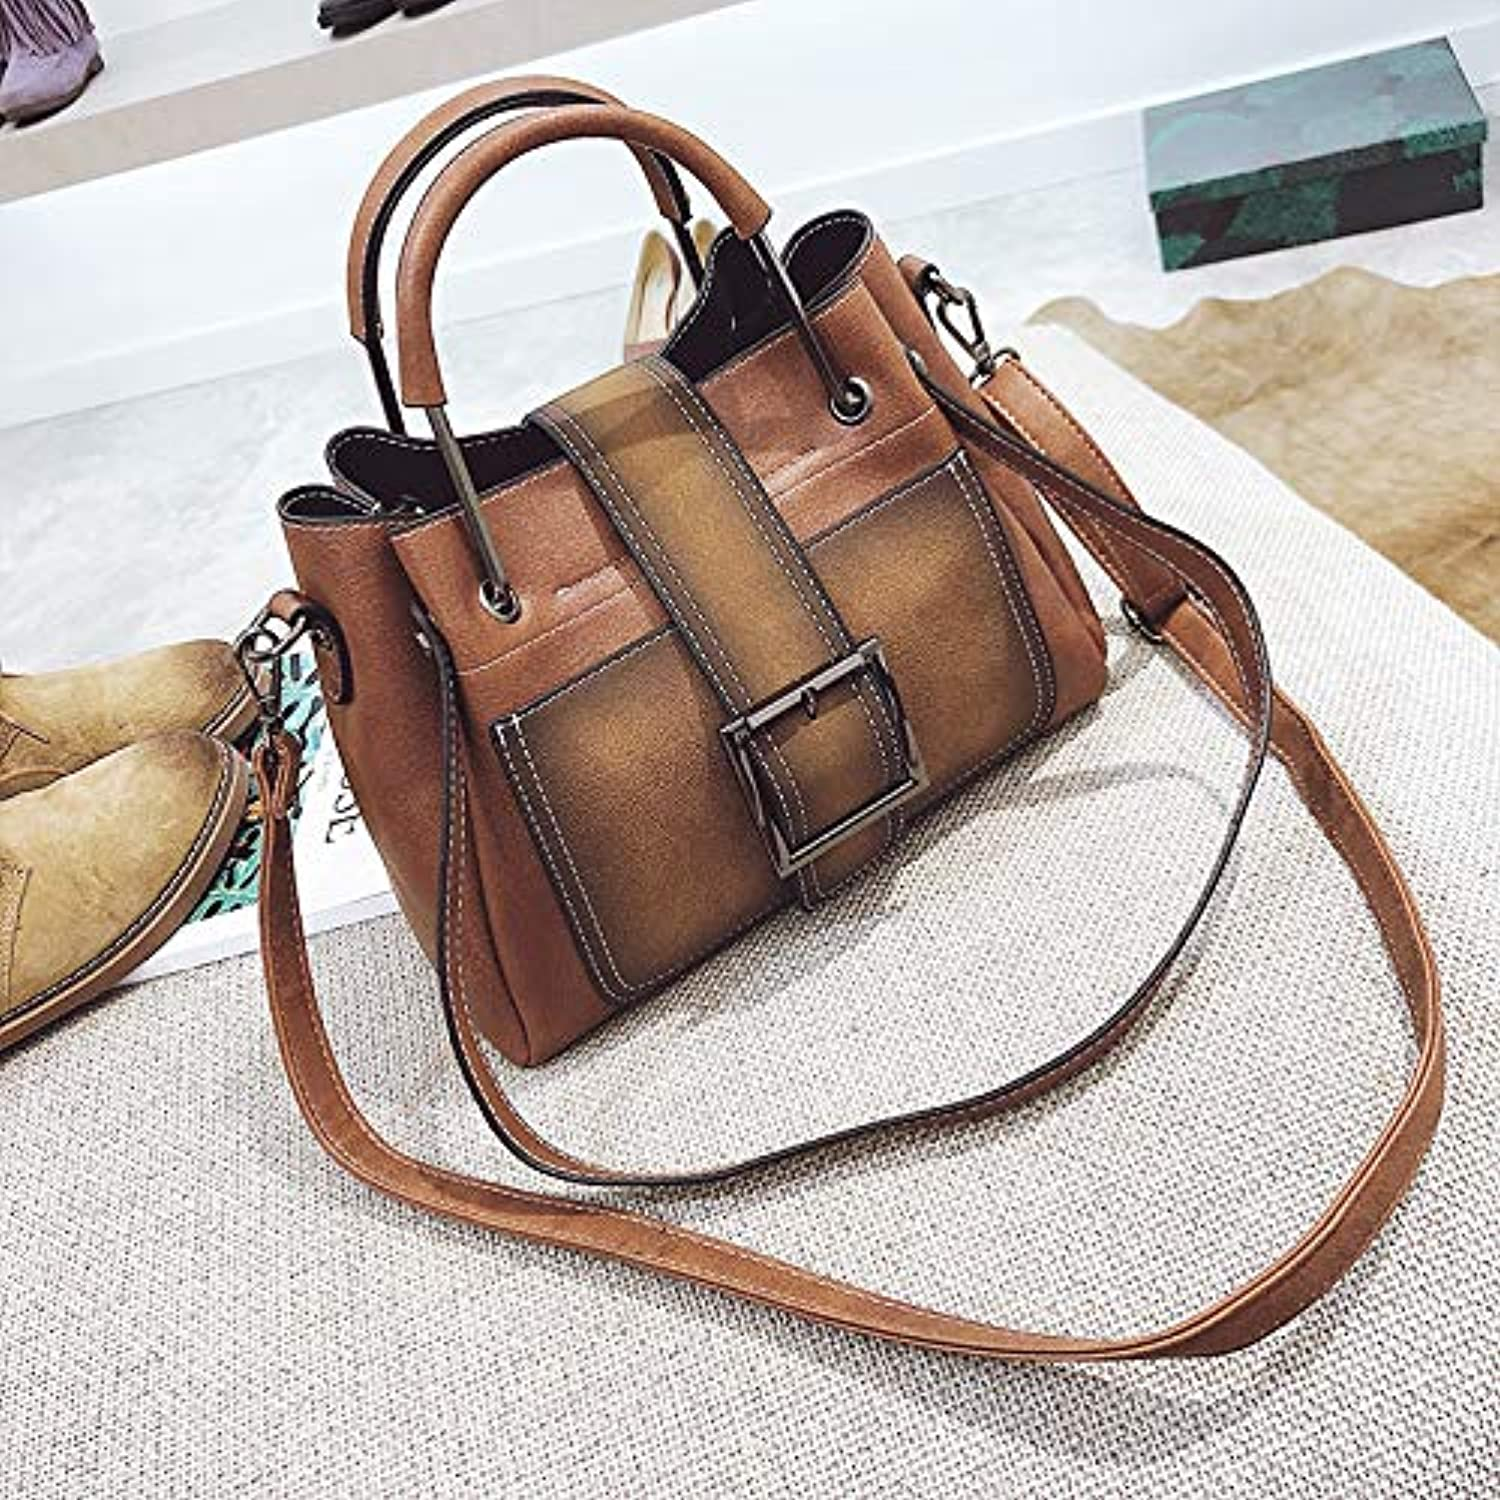 WANGZHAO Women's Bag, Shoulder Bag, Satchel Bag, Handbag, Simple Retro Fashion Lady 26X10X9Cm